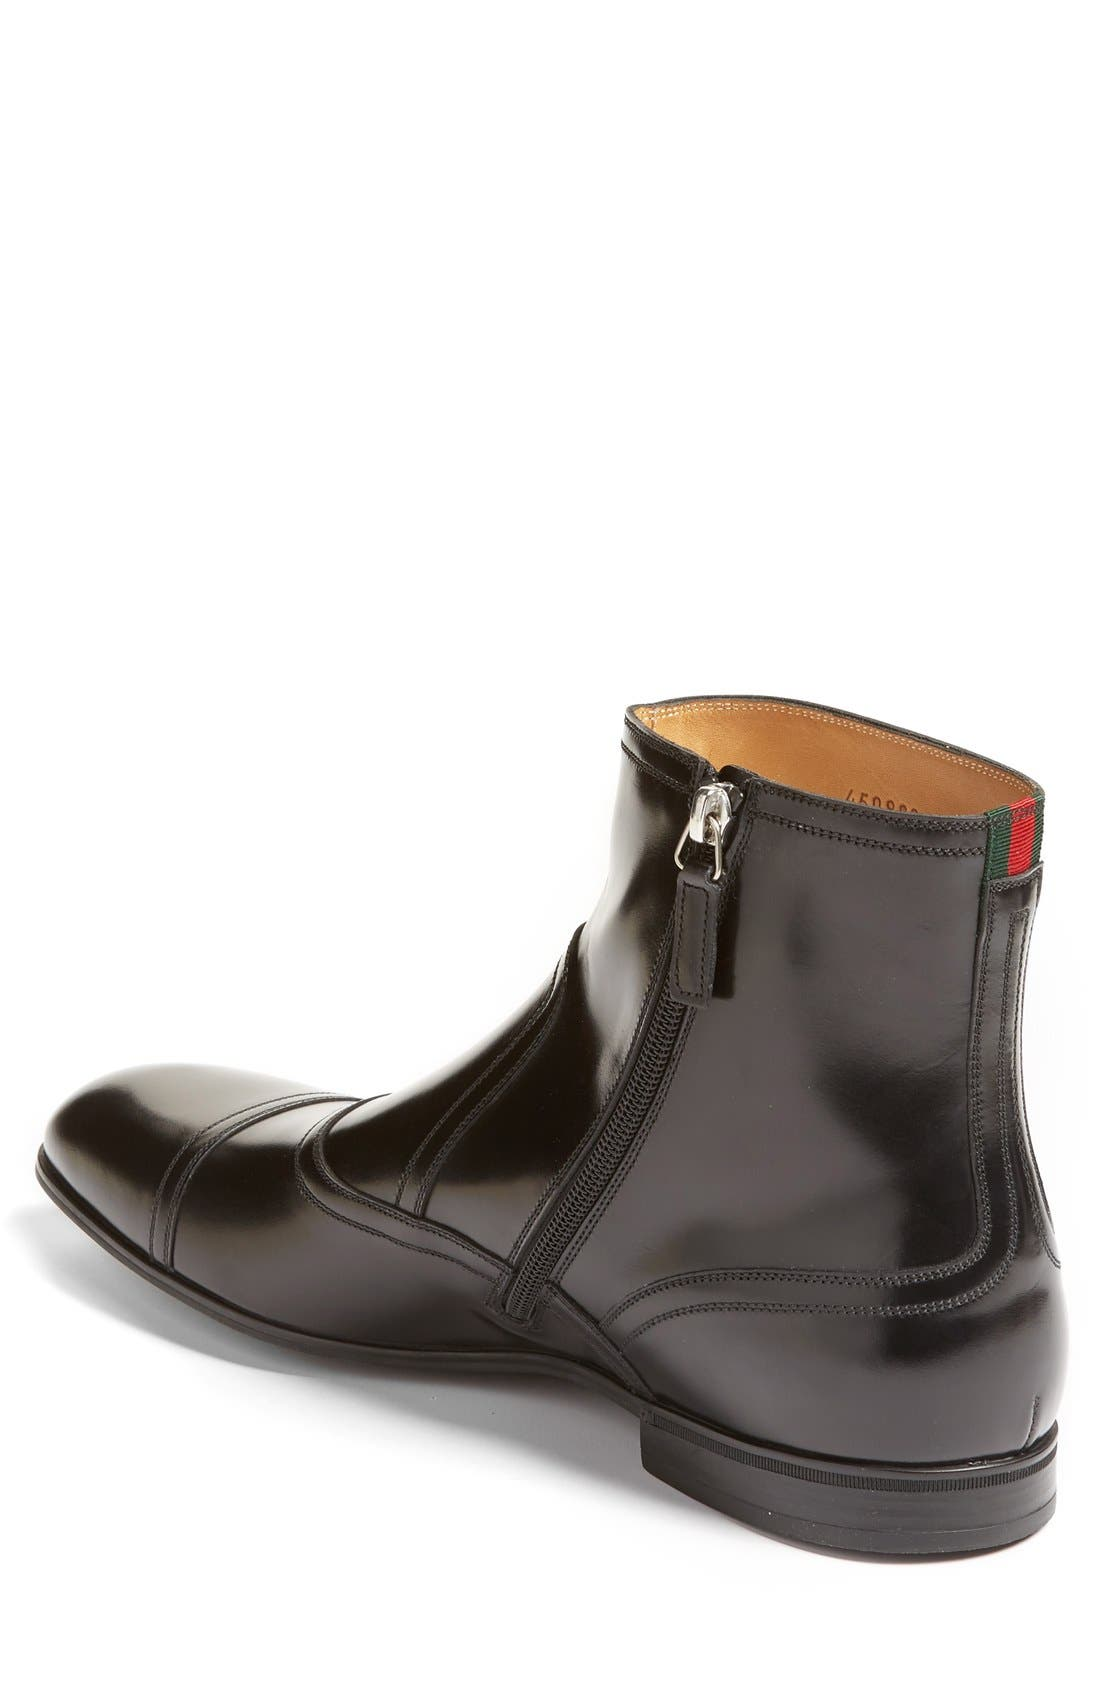 Ravello Zip Boot,                             Alternate thumbnail 7, color,                             009